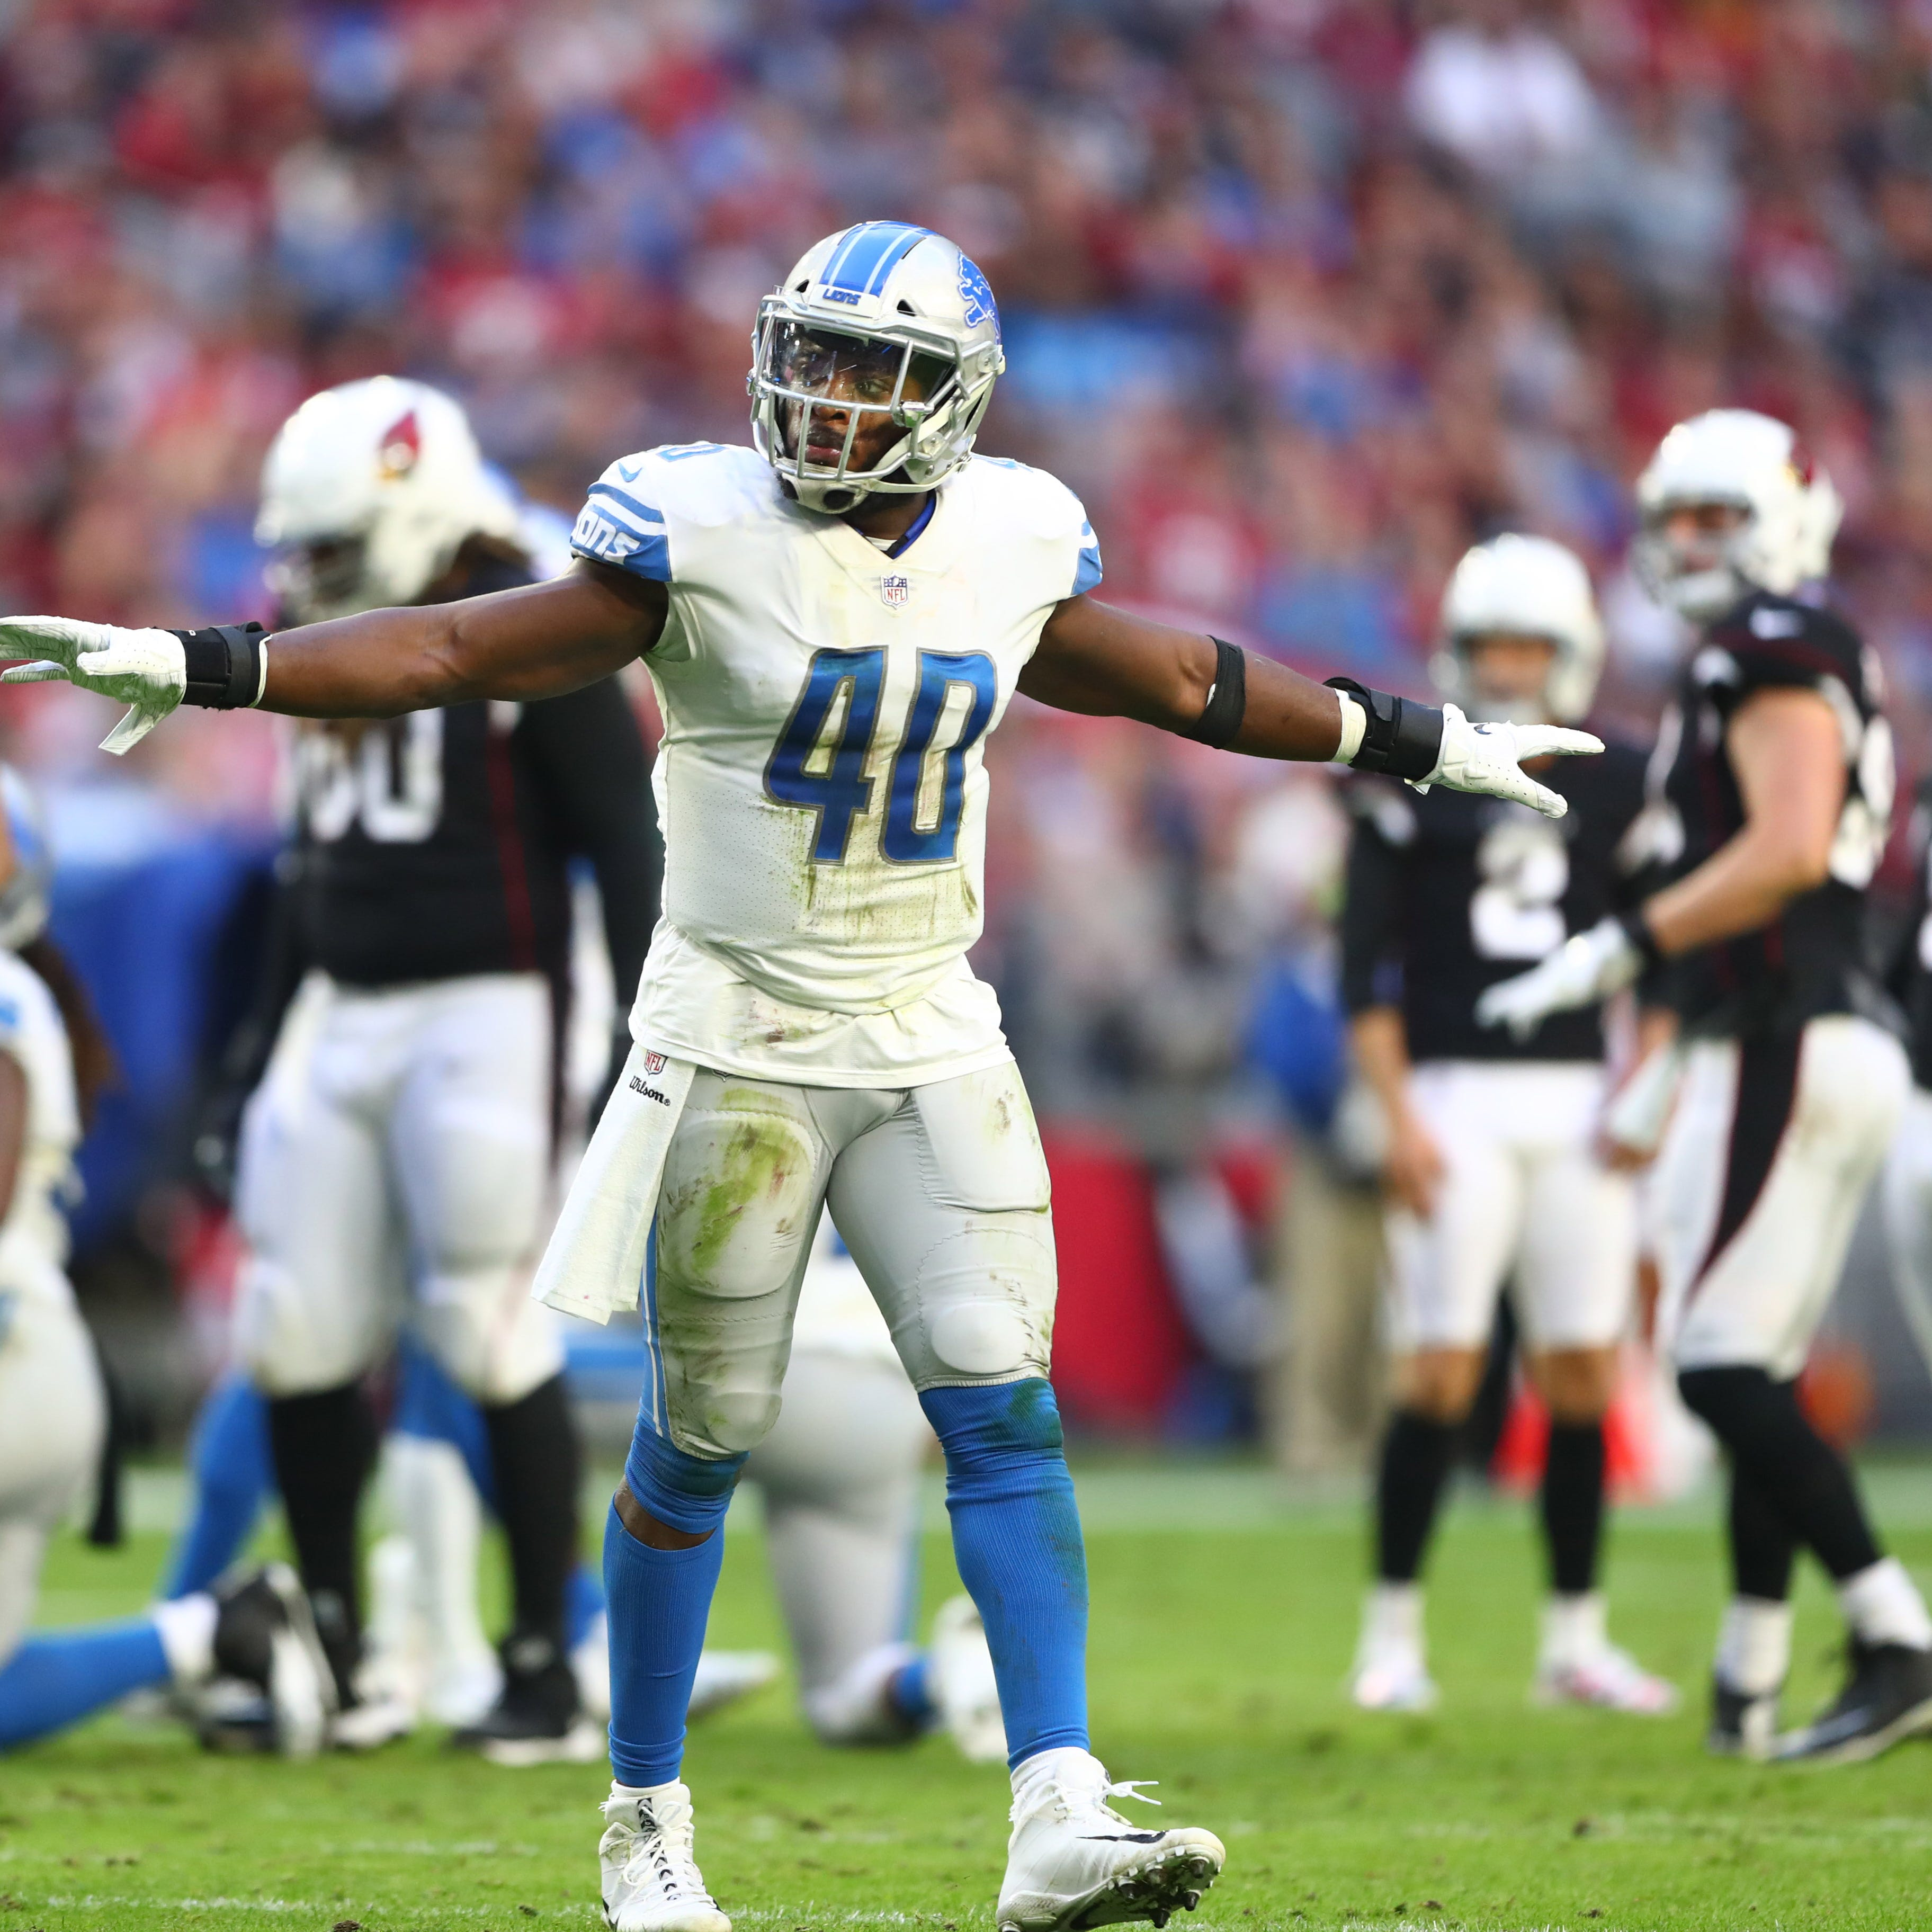 Detroit Lions look rough, not as bad as Arizona Cardinals in 17-3 win